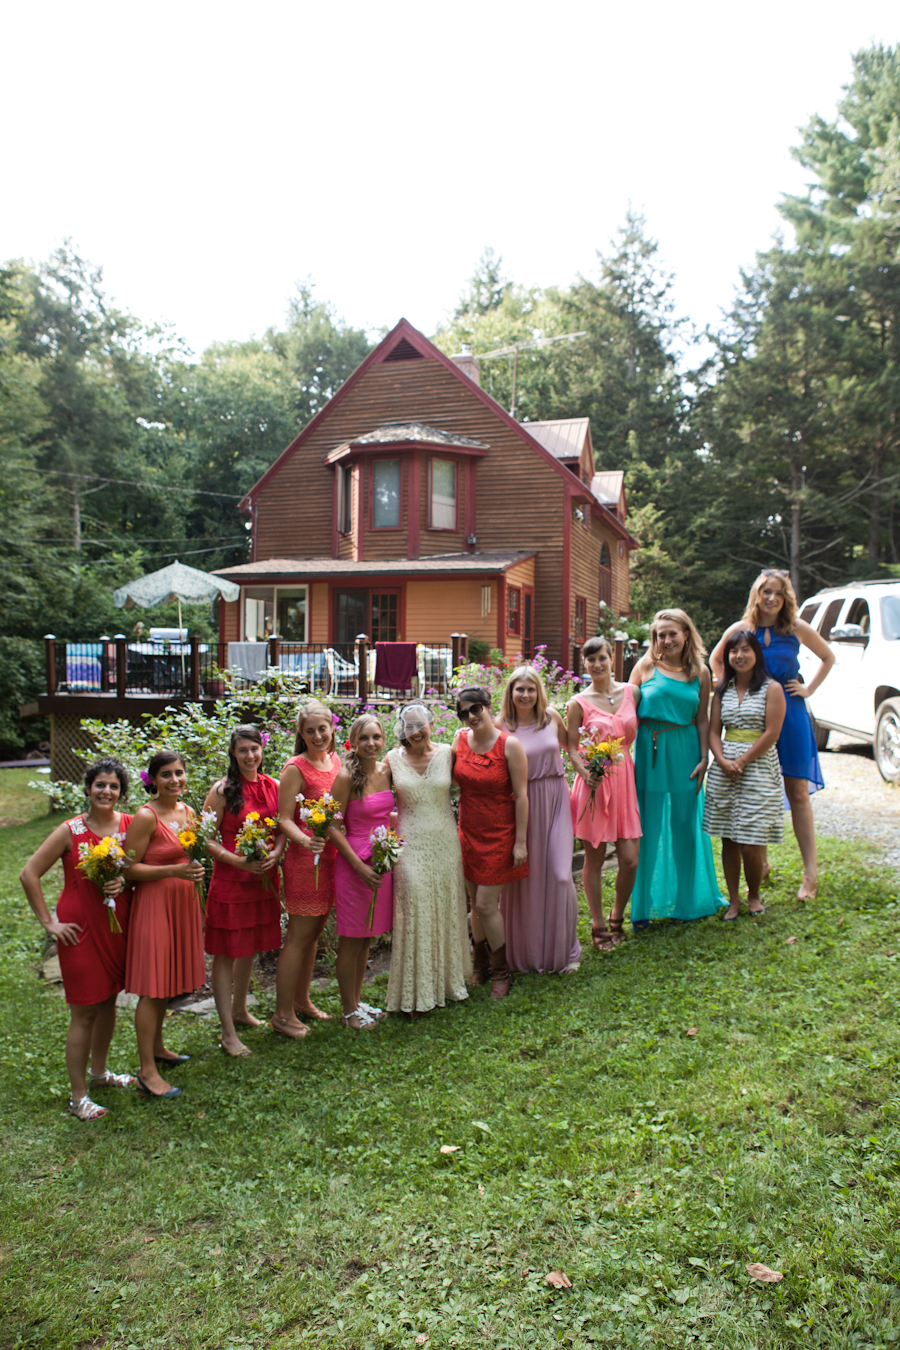 Upstate New York Summer Backyard Barn Wedding DIY Bride Colorful Bridesmaid Dresses